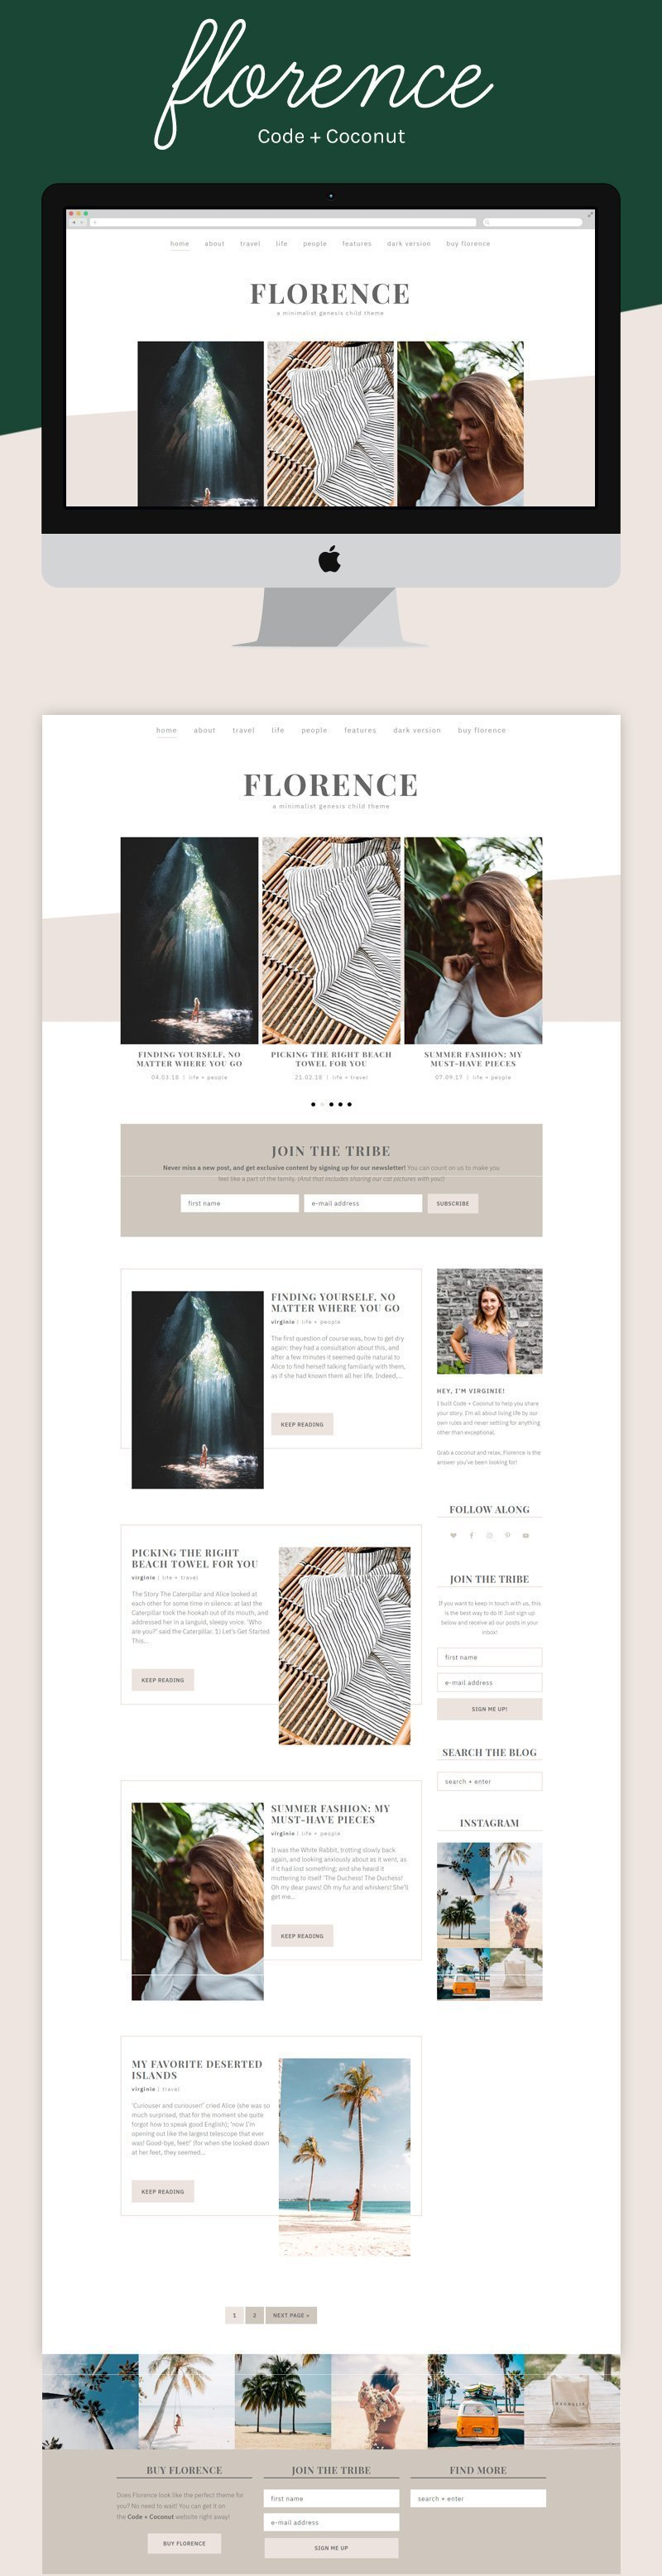 Whether you're in a moody or a beachy vibe, Florence knows just how to fit your style! As a minimalist theme, it's incredibly versatile, letting you adjust it however you need.  Florence is a gorgeous WordPress theme you'll have no problem installing on your website. In just a few clicks, you'll have it look just like the demo and will be ready to blog!  #wordpress #wordpresstheme #genesischildtheme #codeandcoconut